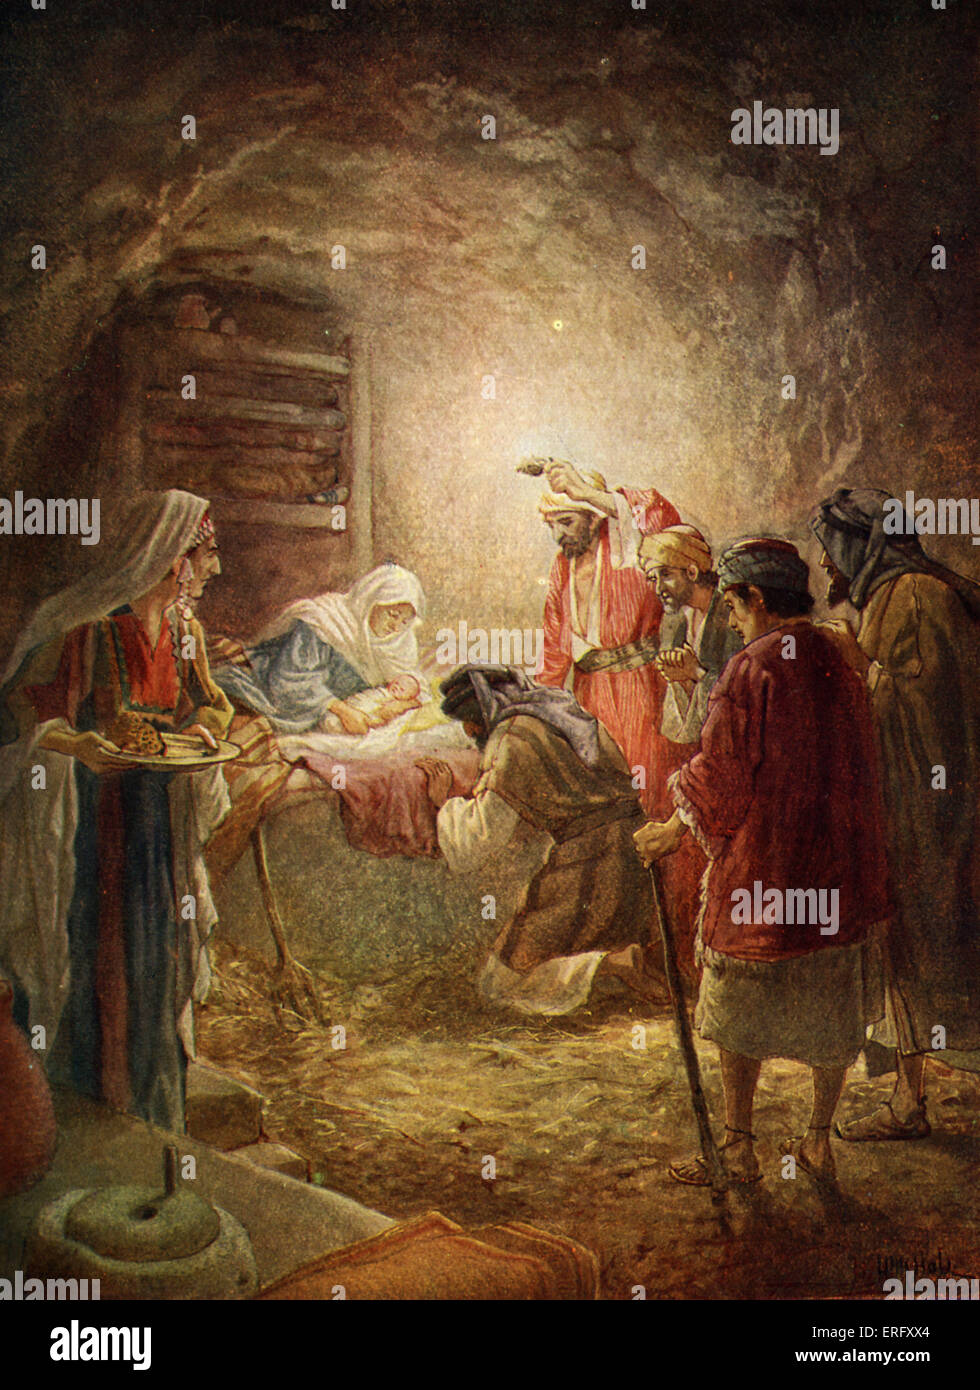 Nativity scene. 'And they came with haste, and found both Mary and Joseph, and the babe lying in the manger'. - Stock Image